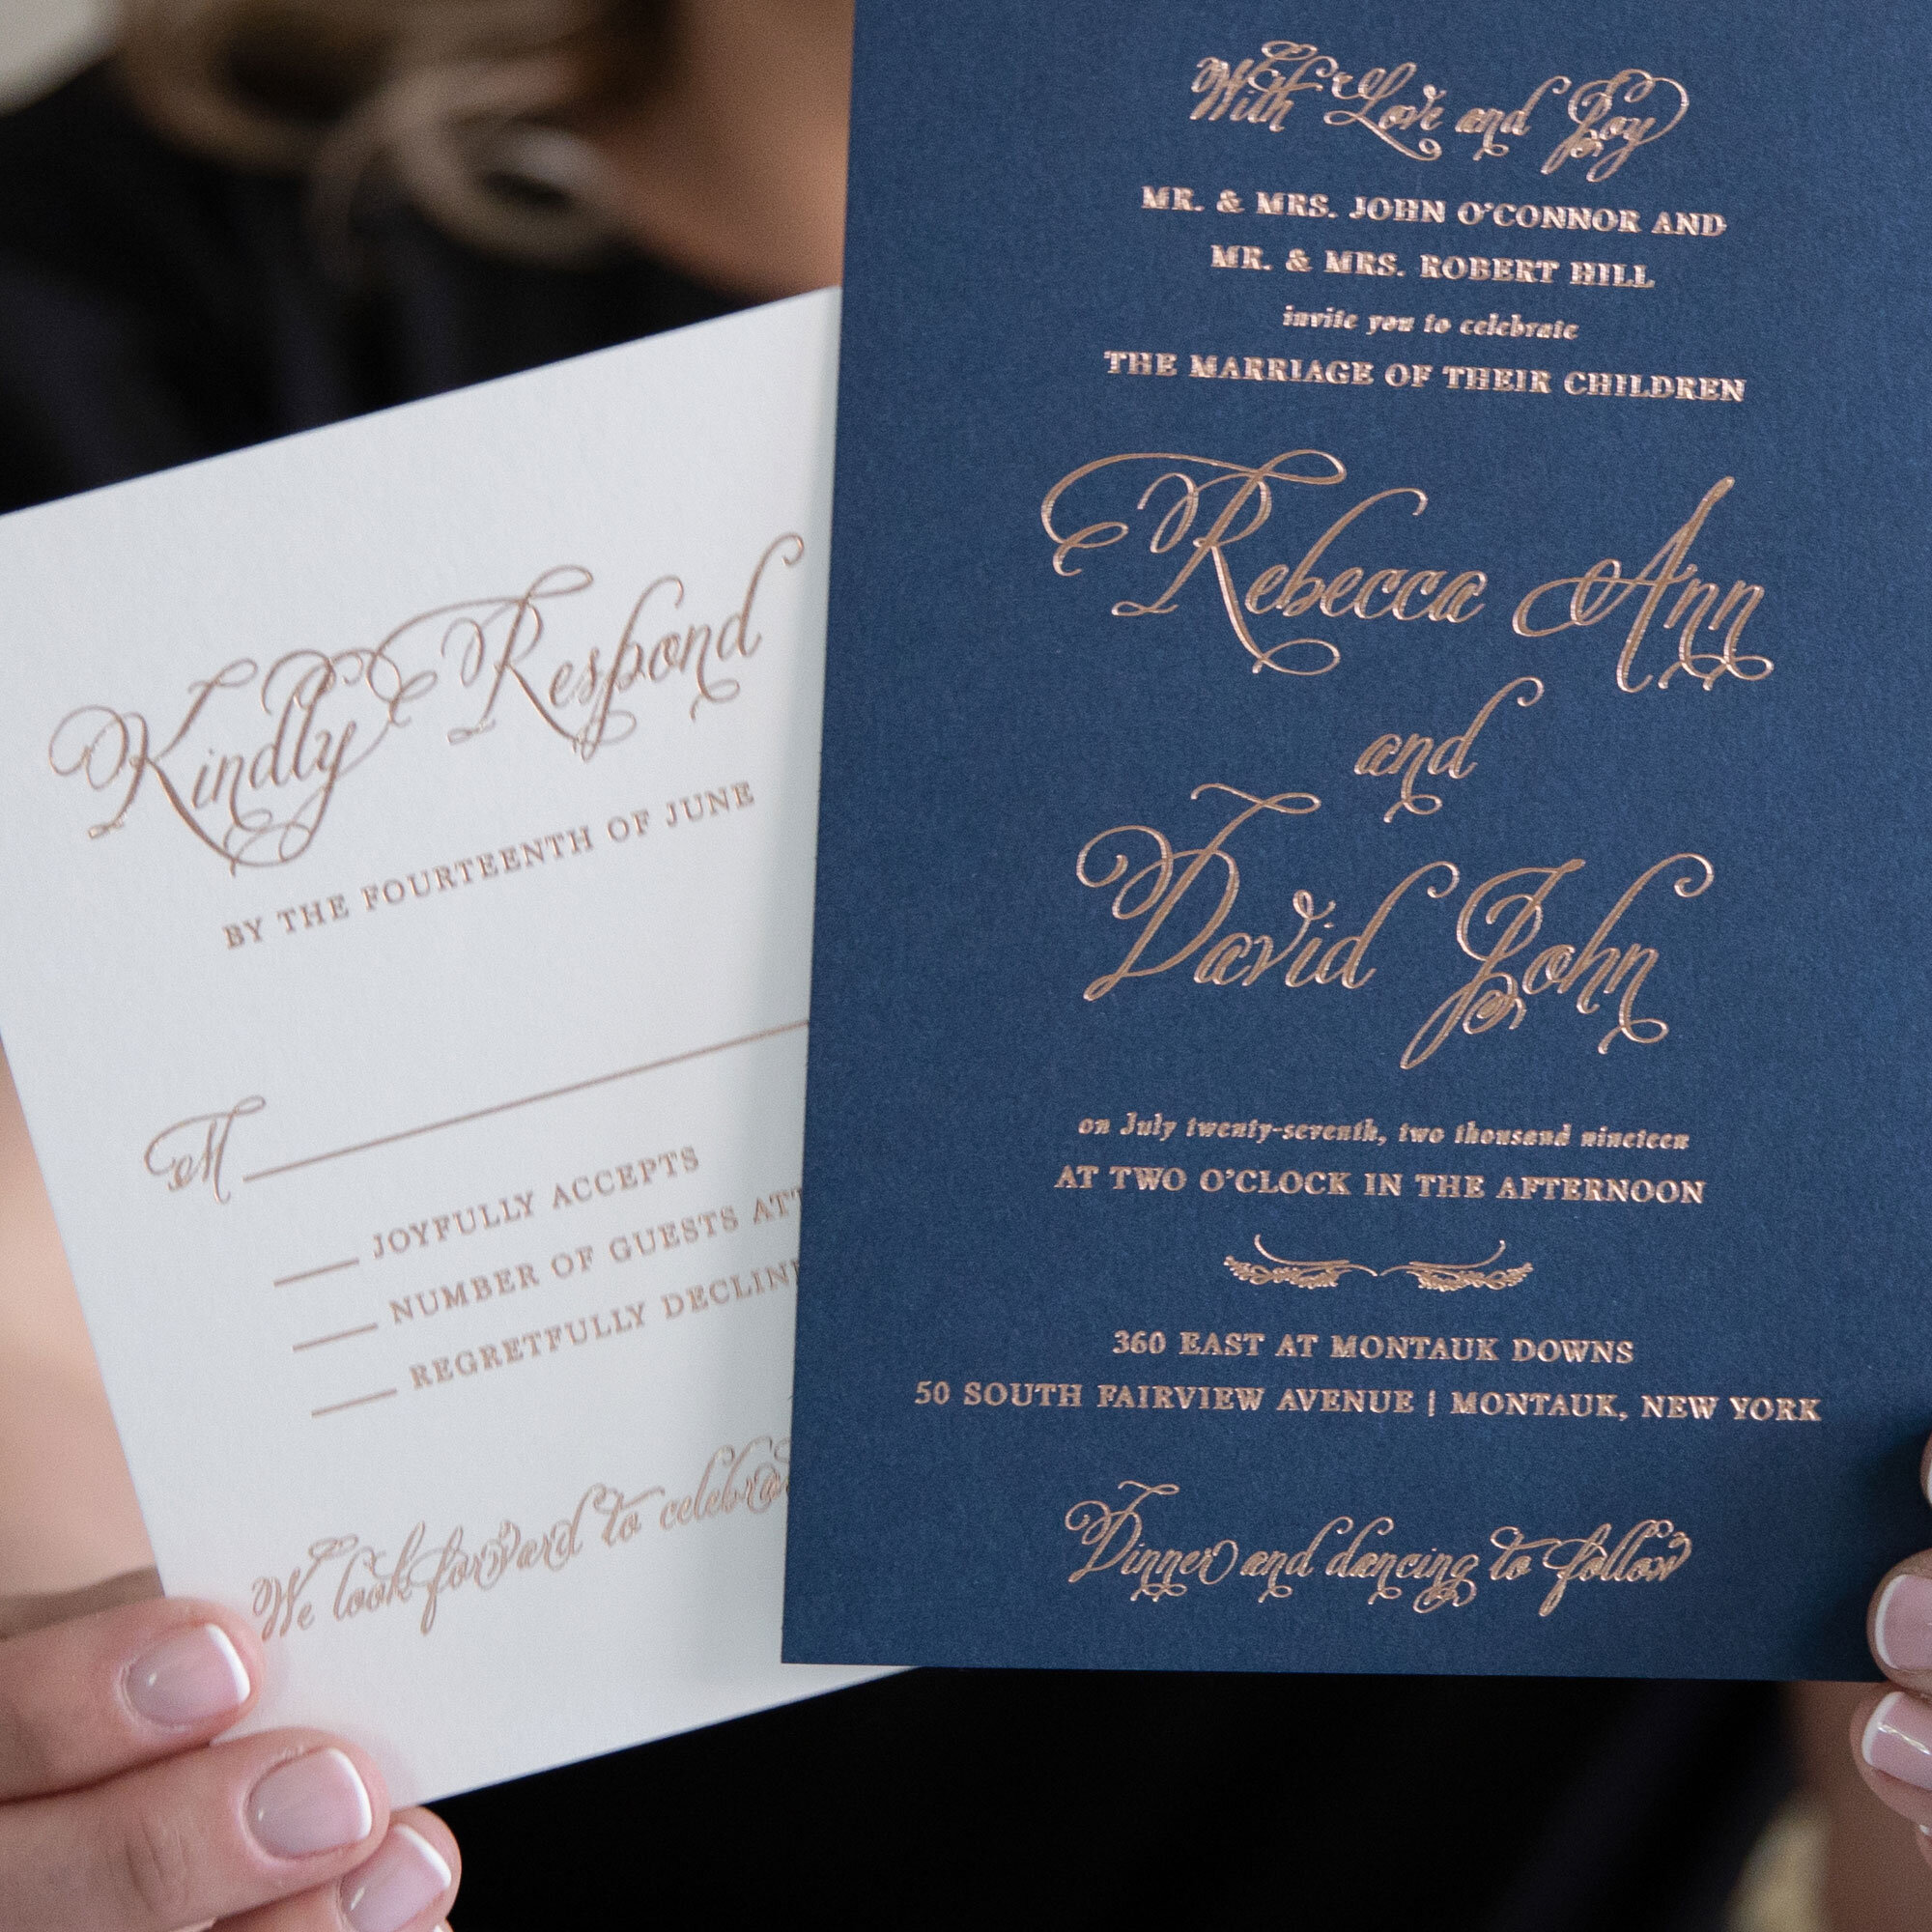 robedeedesign-weddinginvitations-rosegoldfoil-360east-montauk-newyork-jeanboucherphotography.jpg